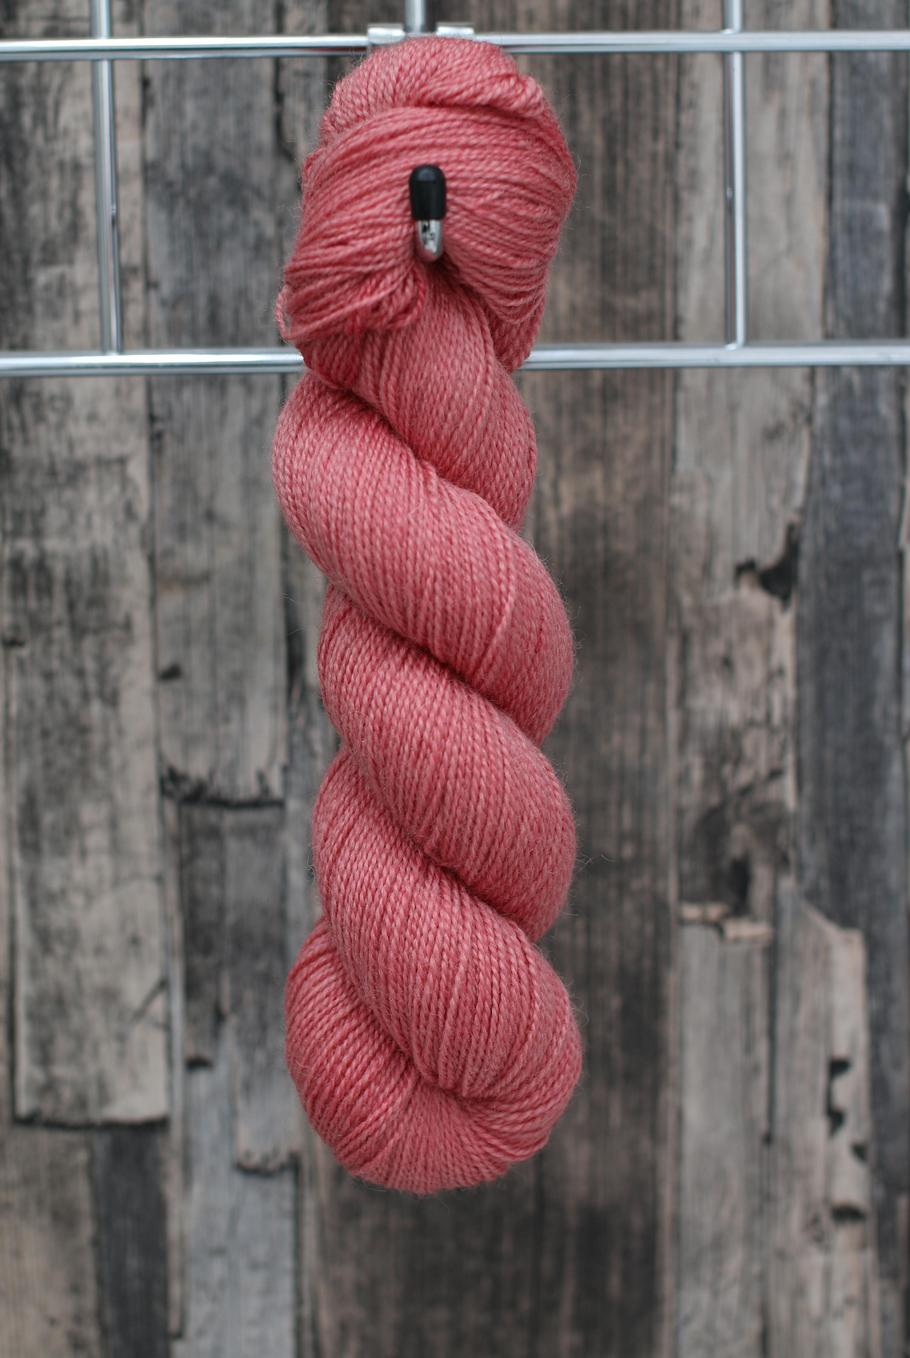 A single skein of soft but warm pink yarn, reminiscent of apple blossom